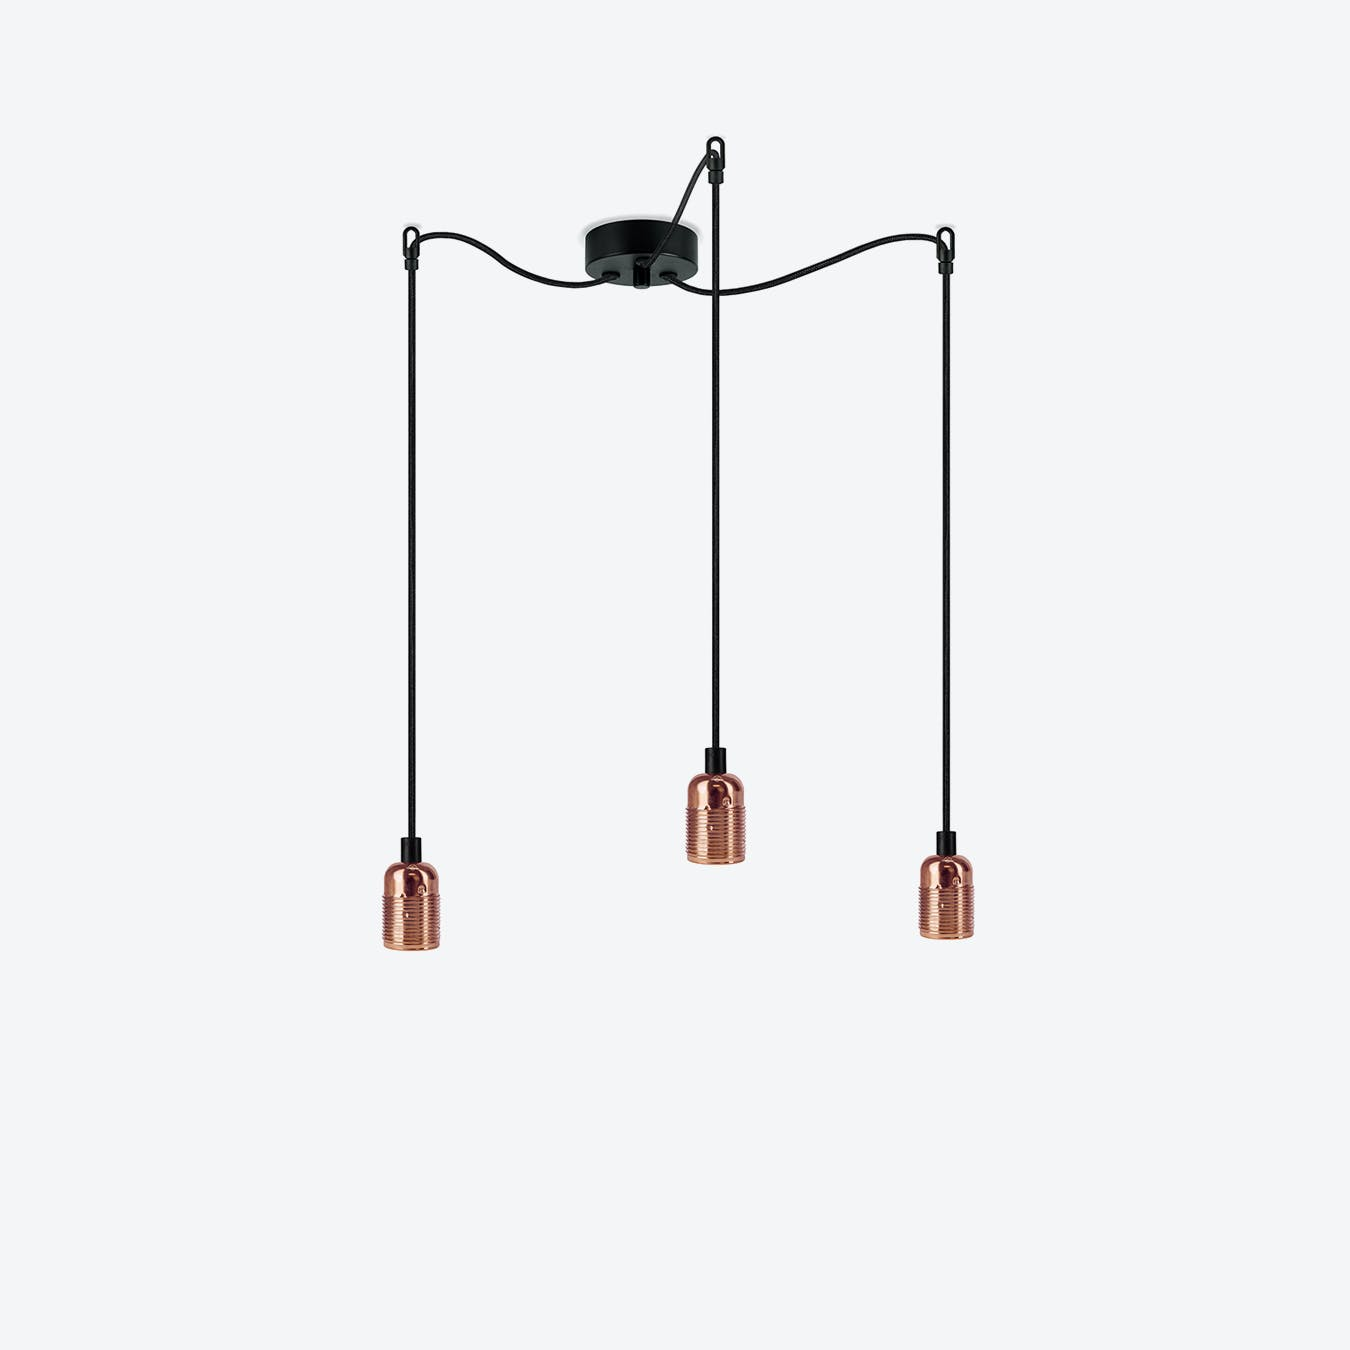 Uno 3 Pendant Light - Glossy Copper/Black Nut